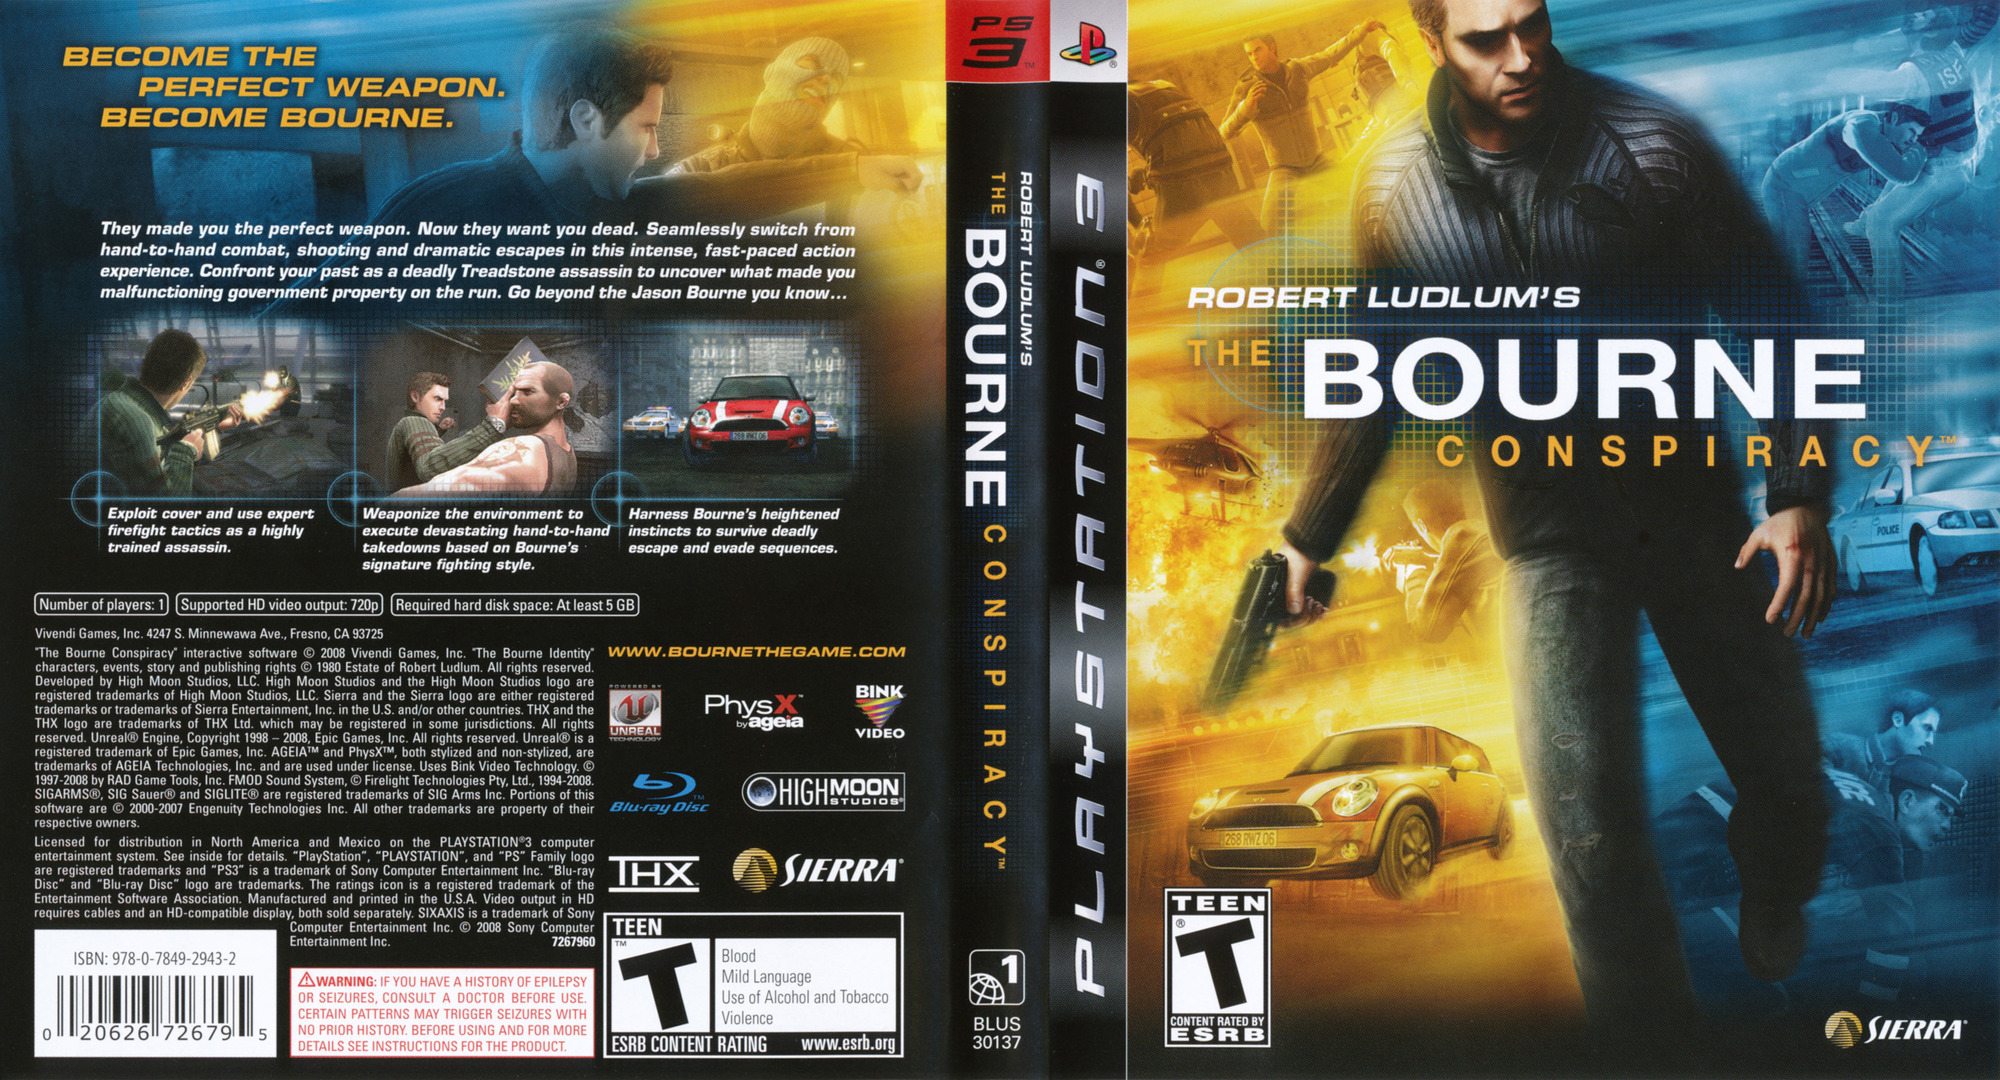 Robert Ludlum's The Bourne Conspiracy Array coverfullHQ (BLUS30137)